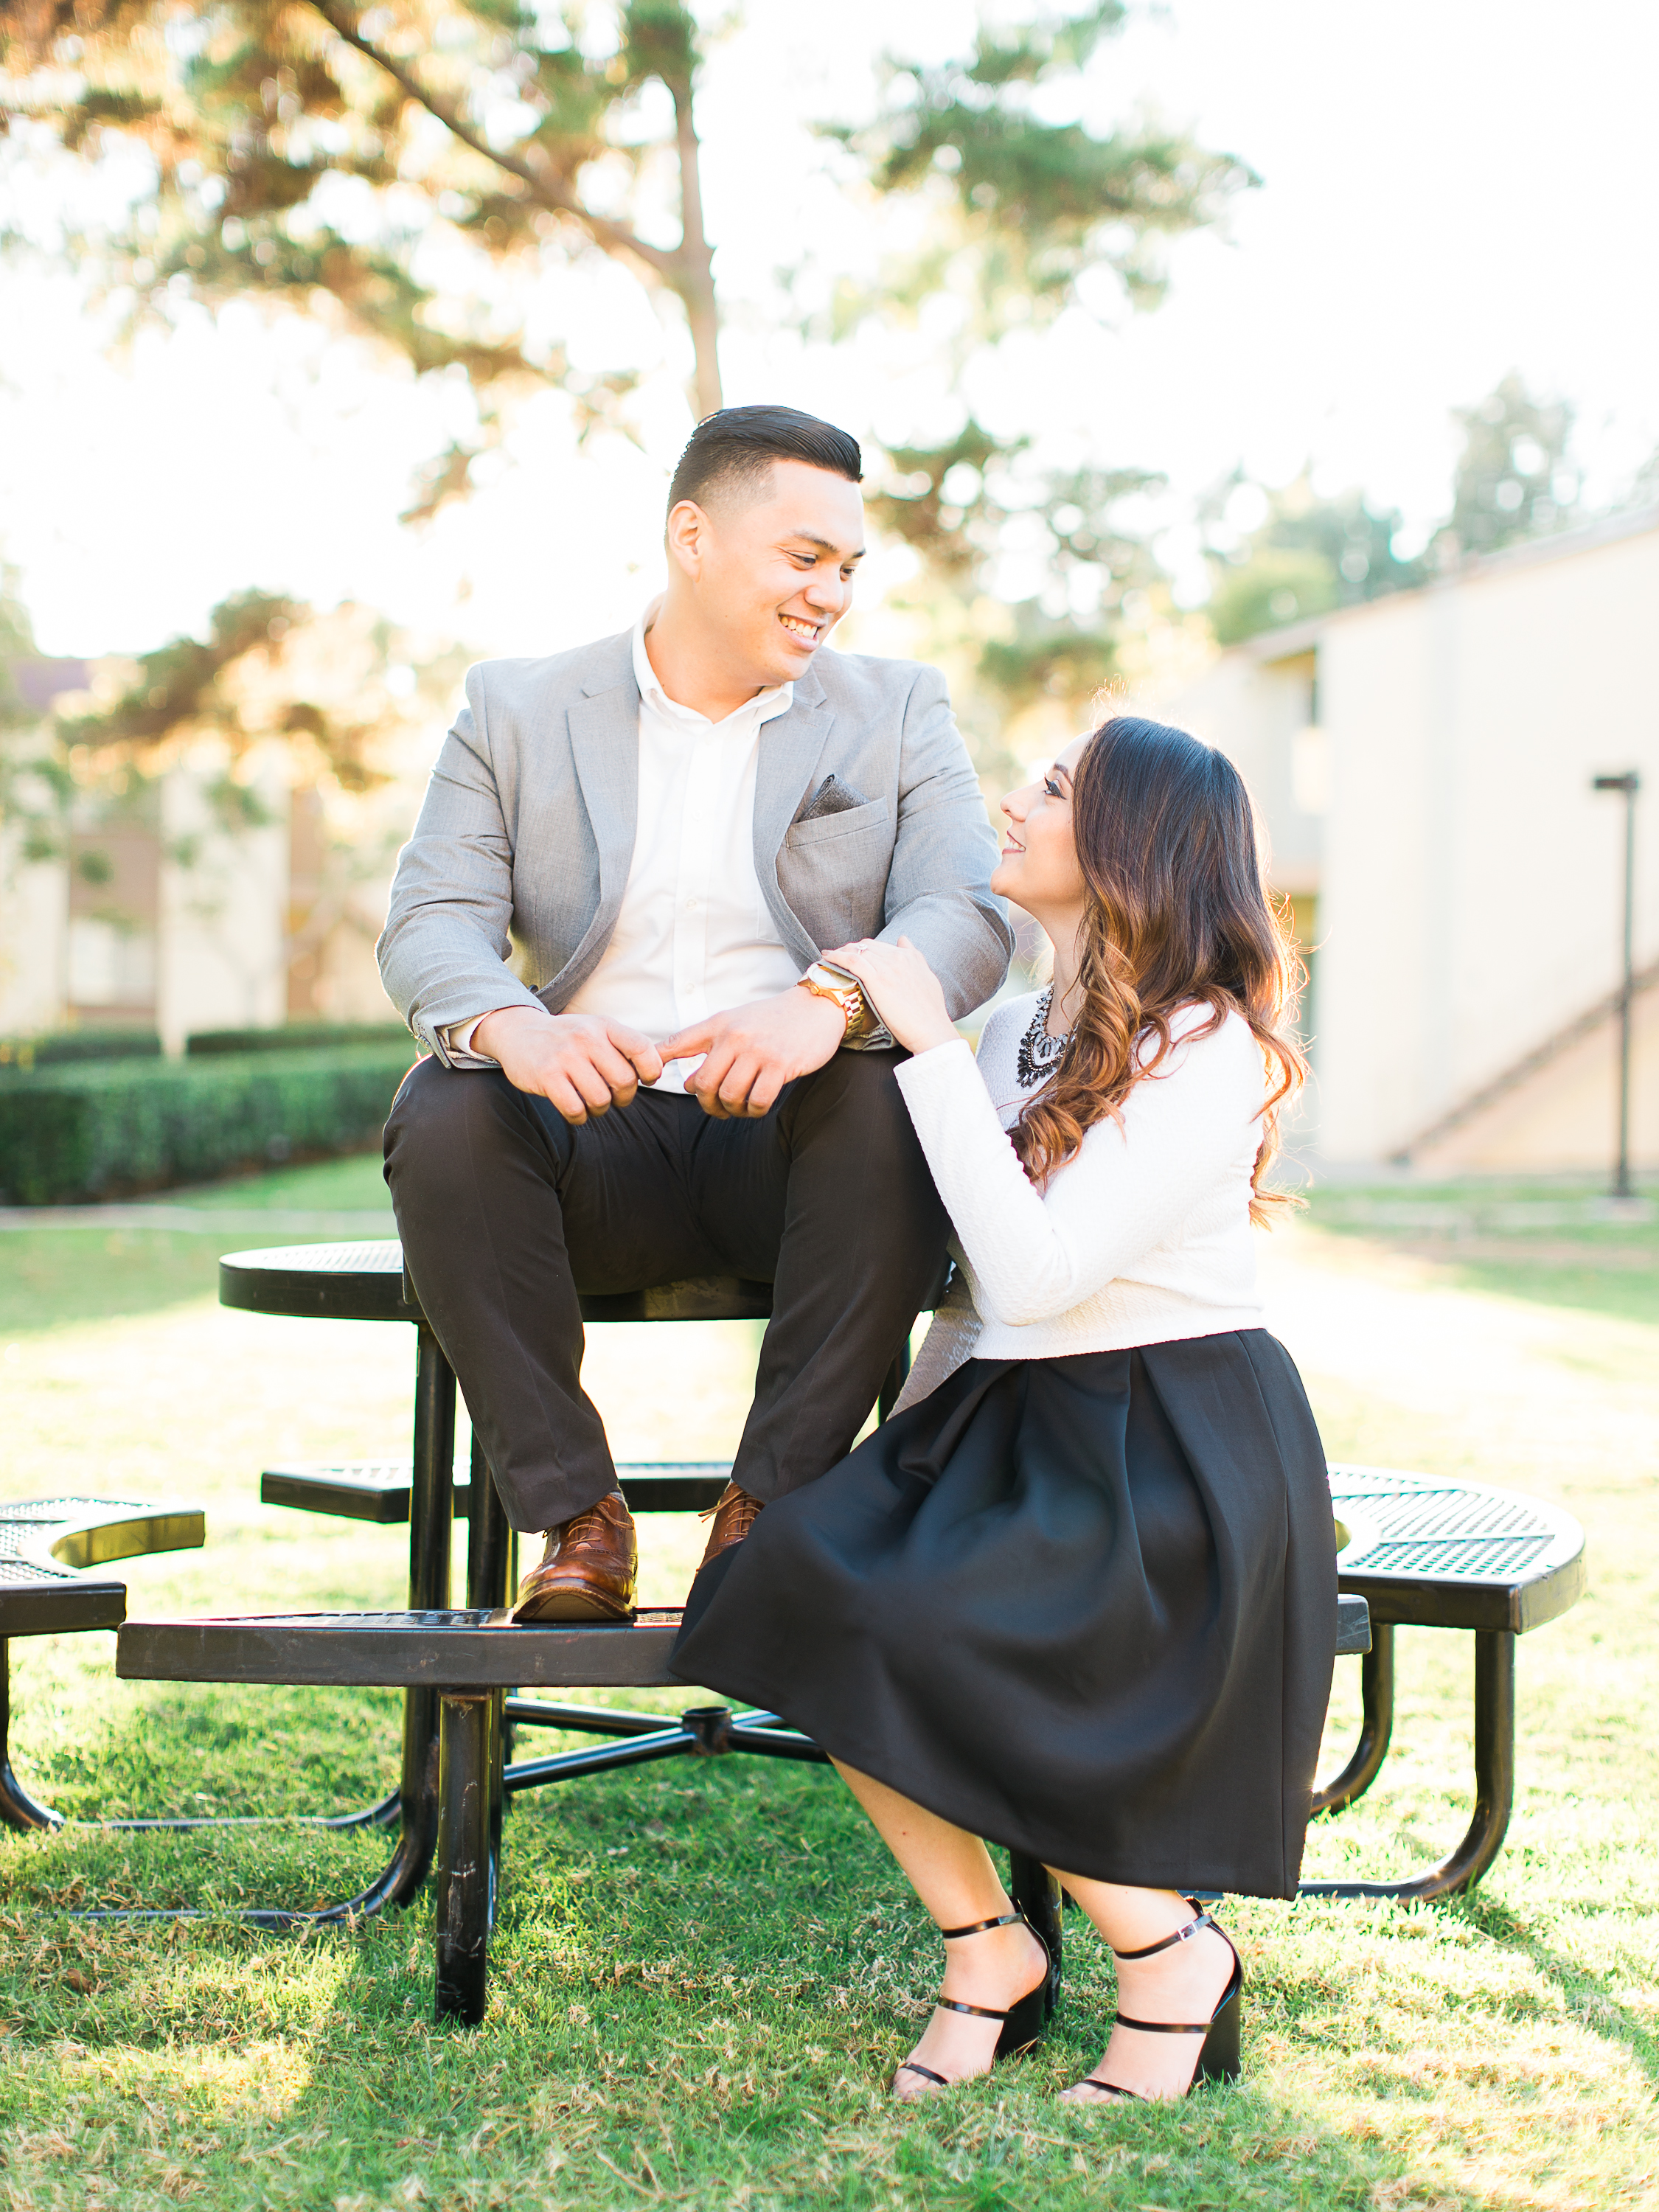 Klint and Yessy Engagement _ Brandon J Ferlin Photography-46.jpg